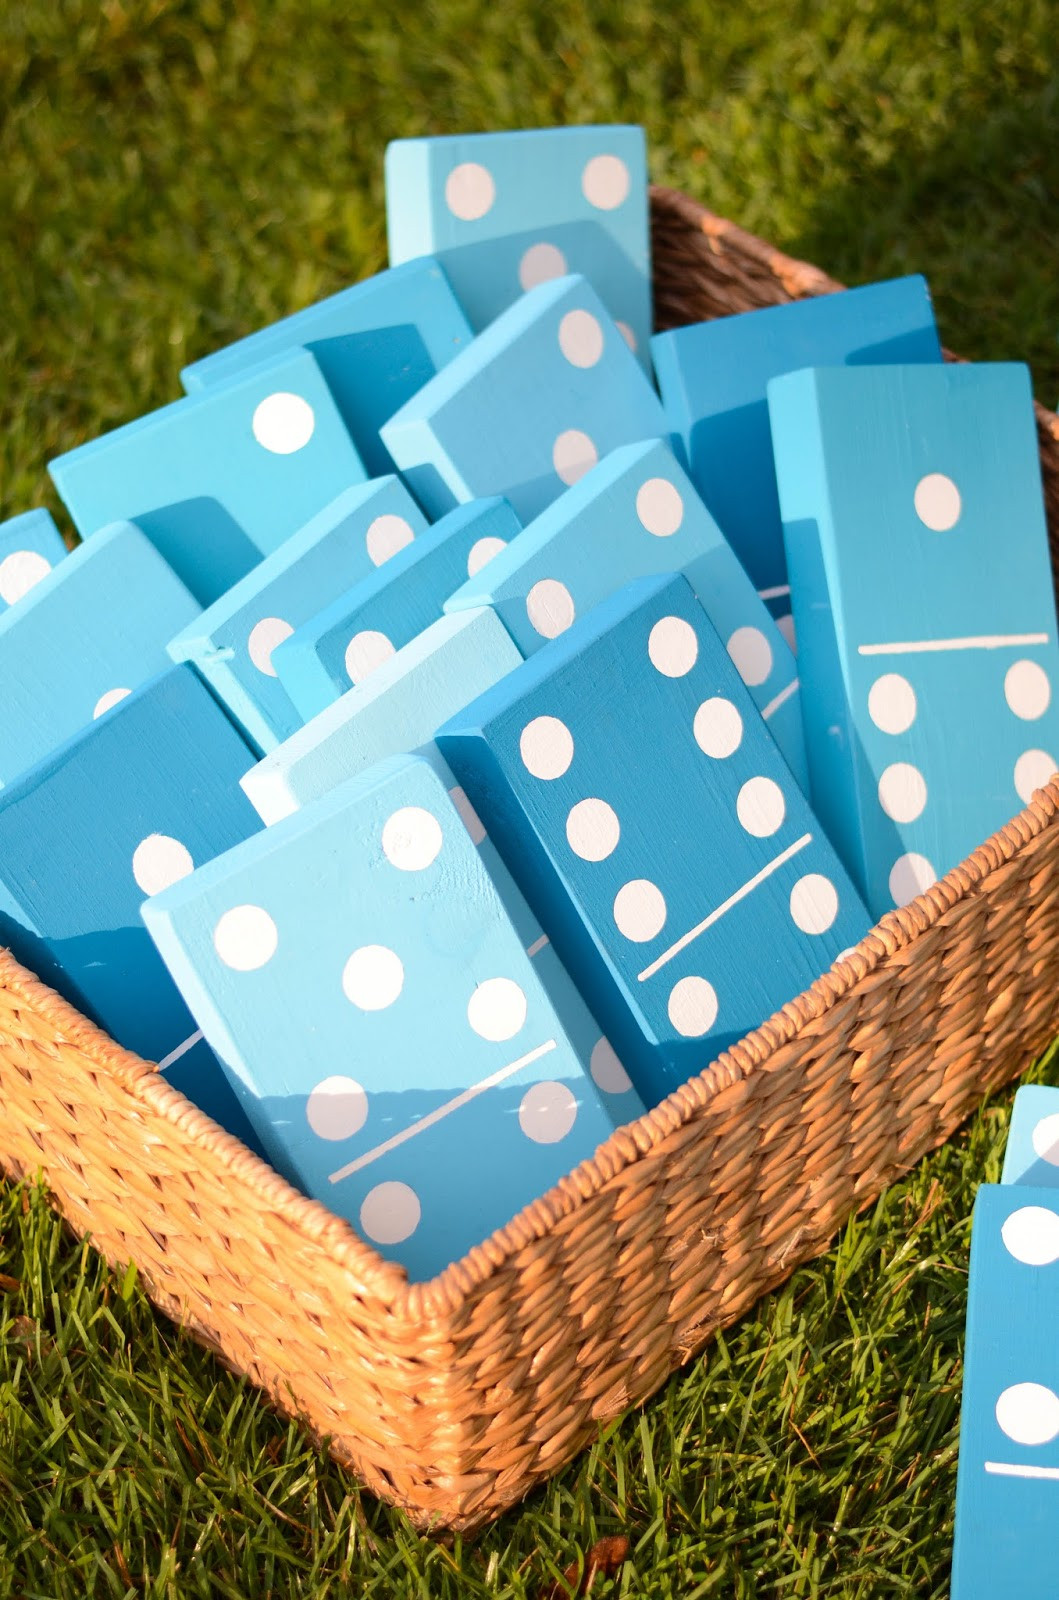 Best ideas about Yard Games DIY . Save or Pin 25 DIY Yard Games Now.